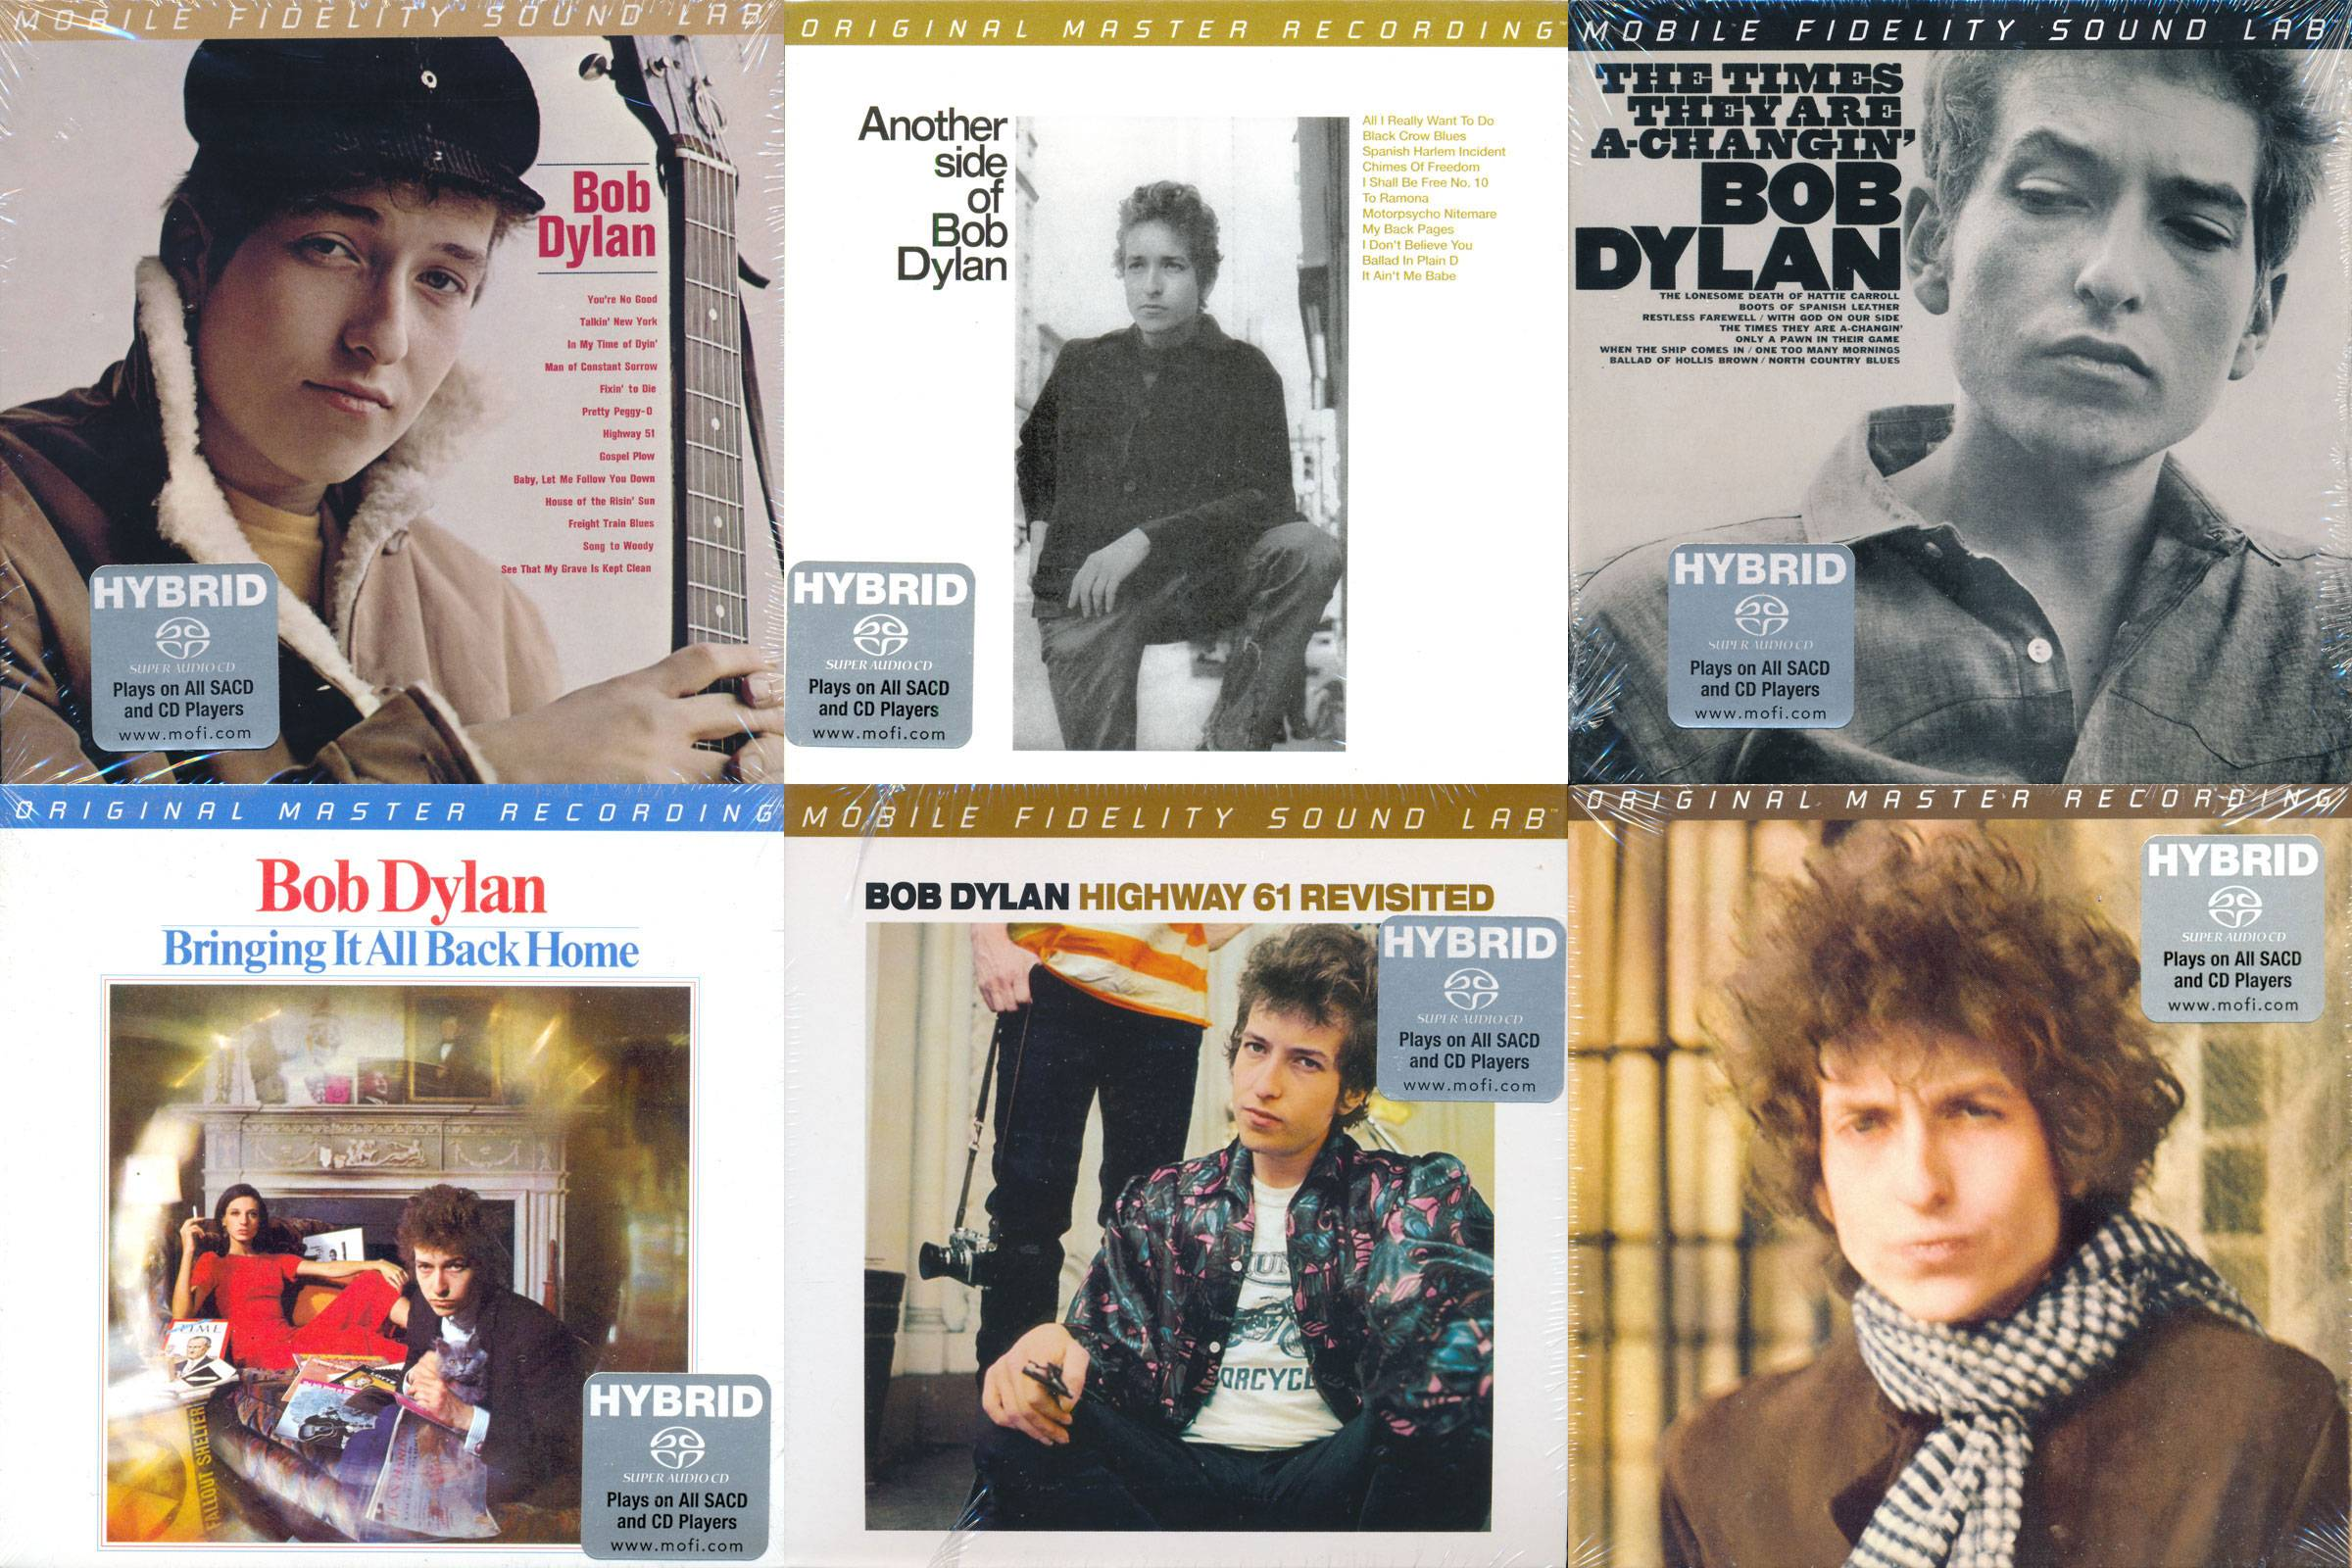 Bob Dylan – Albums Collection (1962-1966) [6CD, Mobile Fidelity Sound Lab]